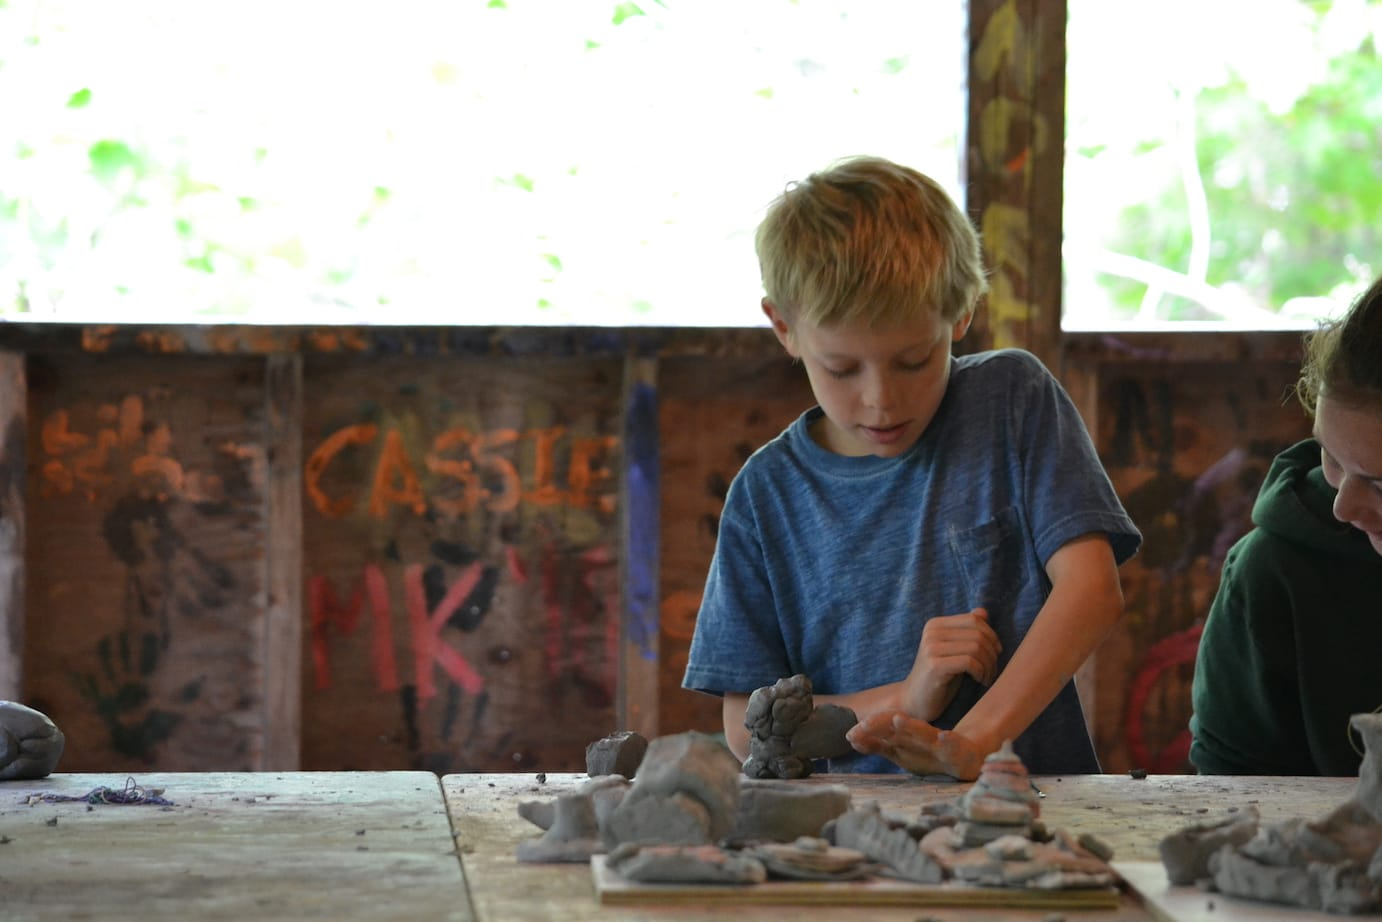 Enjoying Clay at Camp